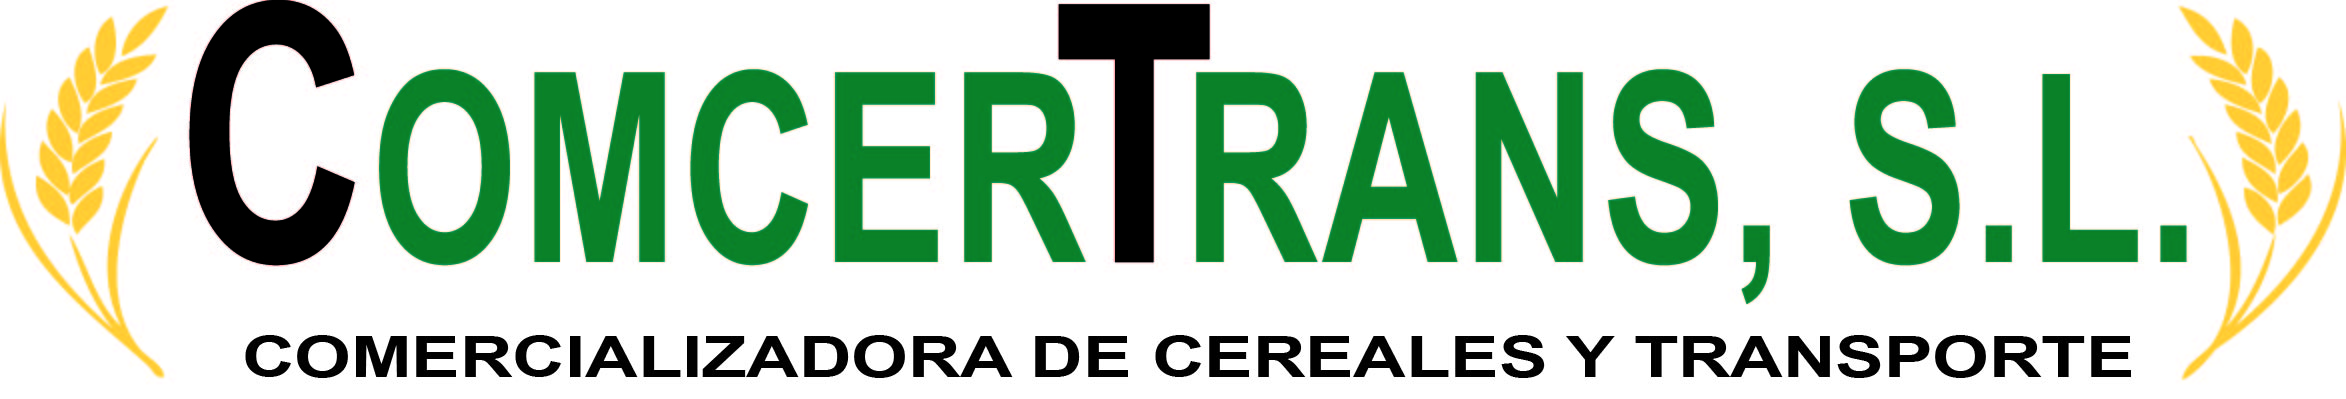 Comcertrans